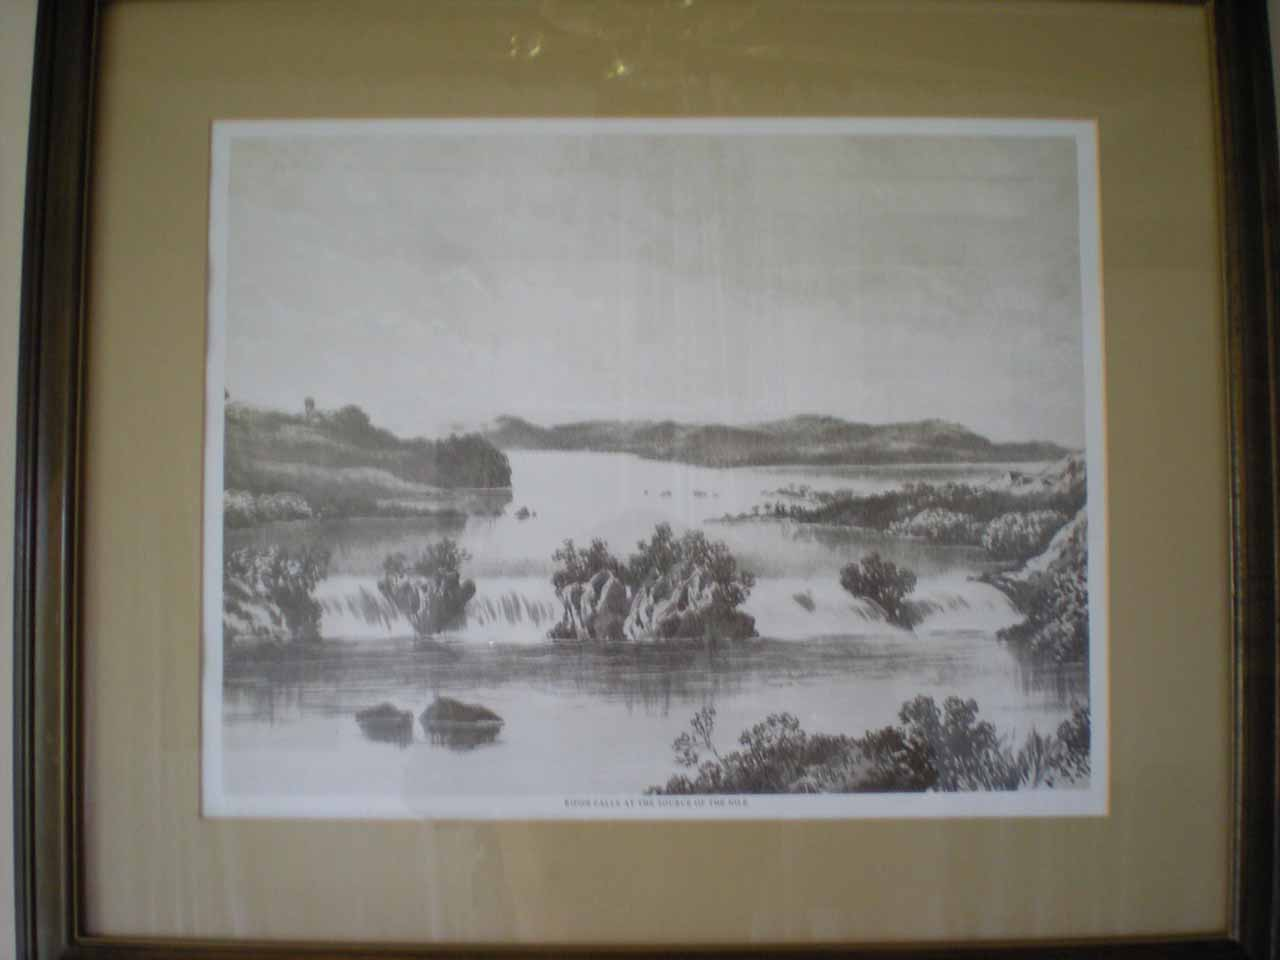 This was a drawing of Rippon Falls at the Source of the Nile before it was destroyed by the Owen Falls dam